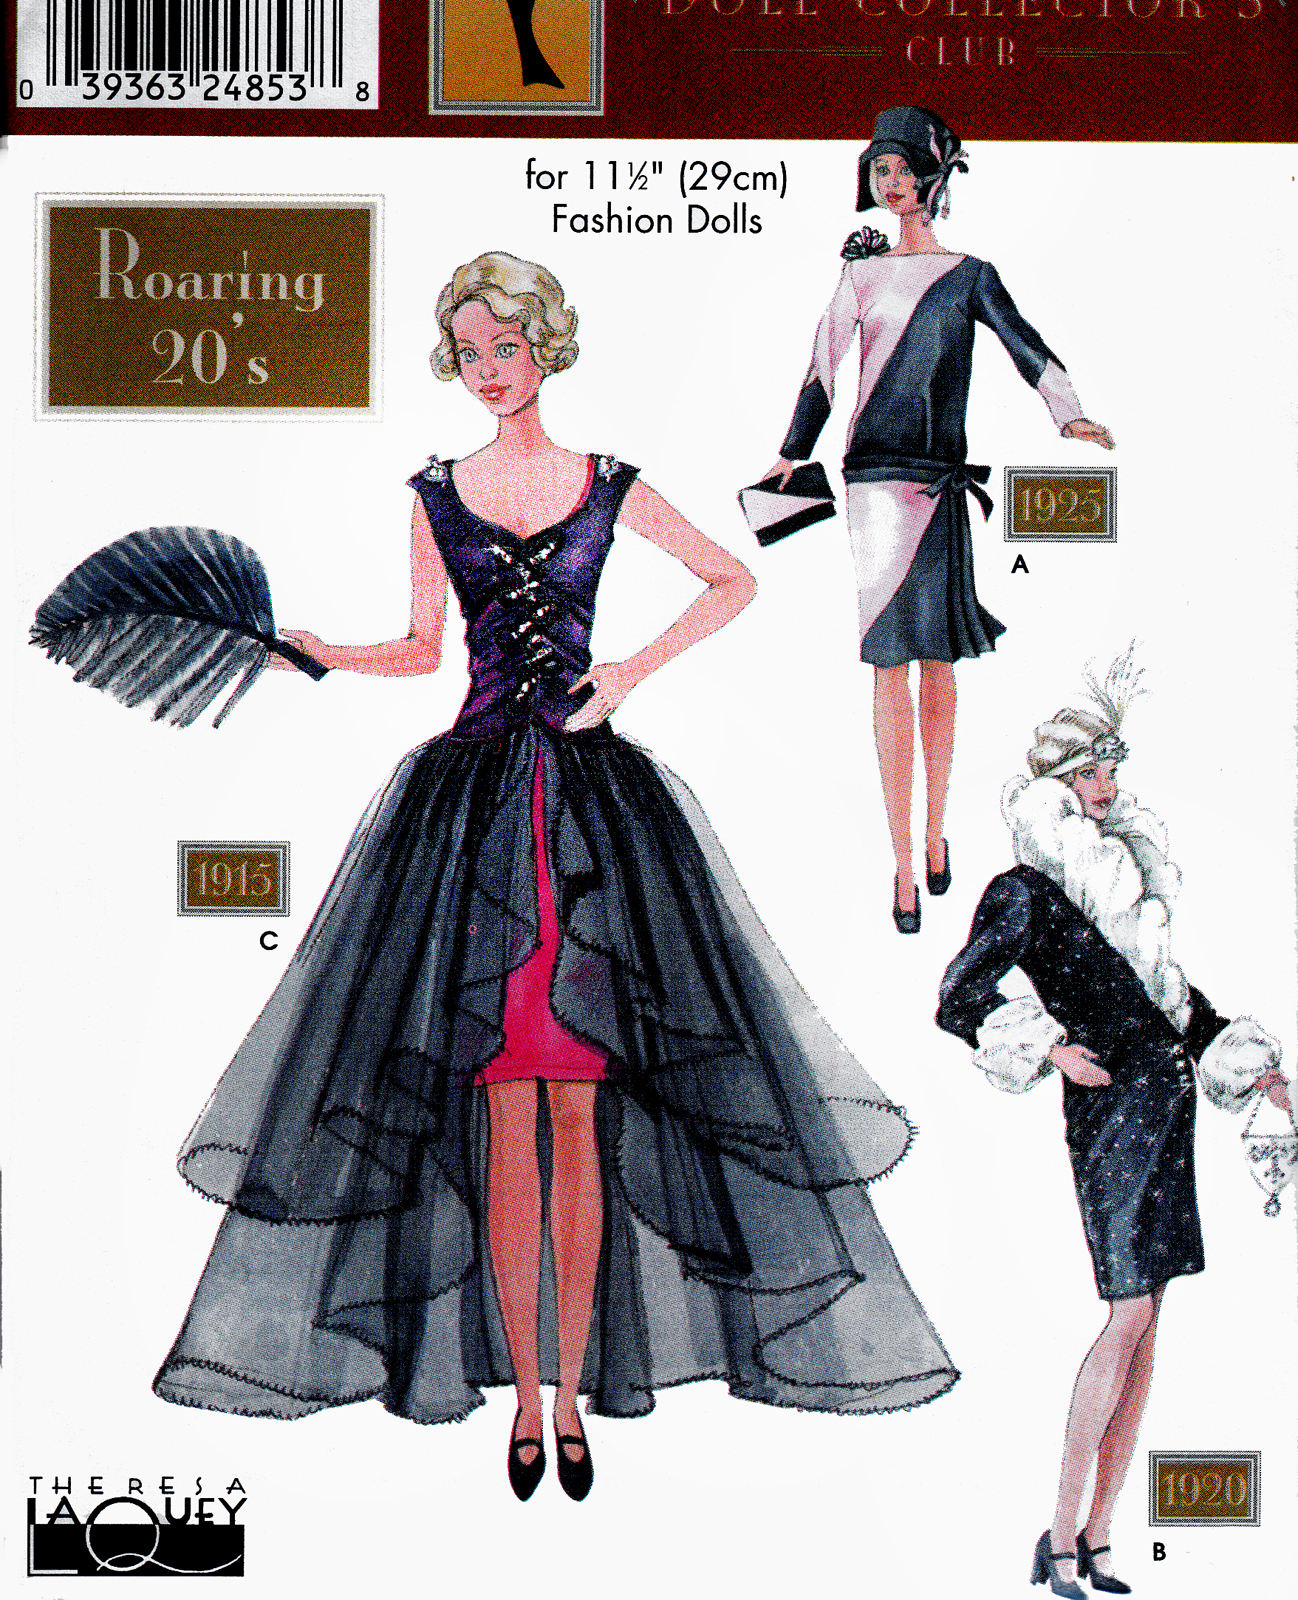 Fashion in the roaring 20s